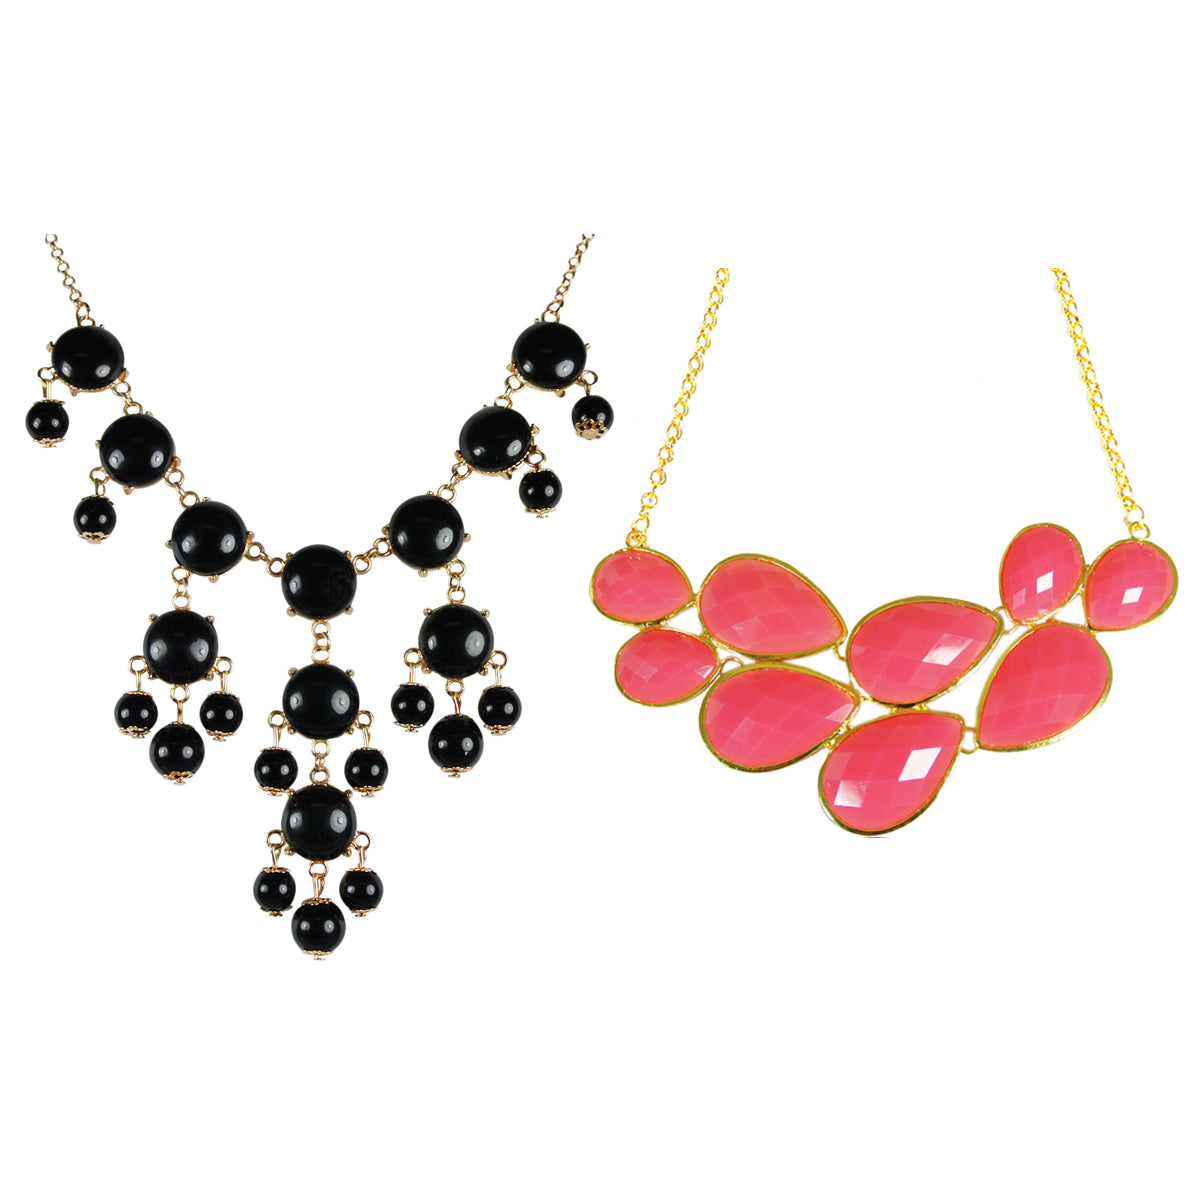 Pink Drop Shape Bubble Statement Necklaces + Black Mini Bubble Bib Statement Necklace [A63992 , A64444]